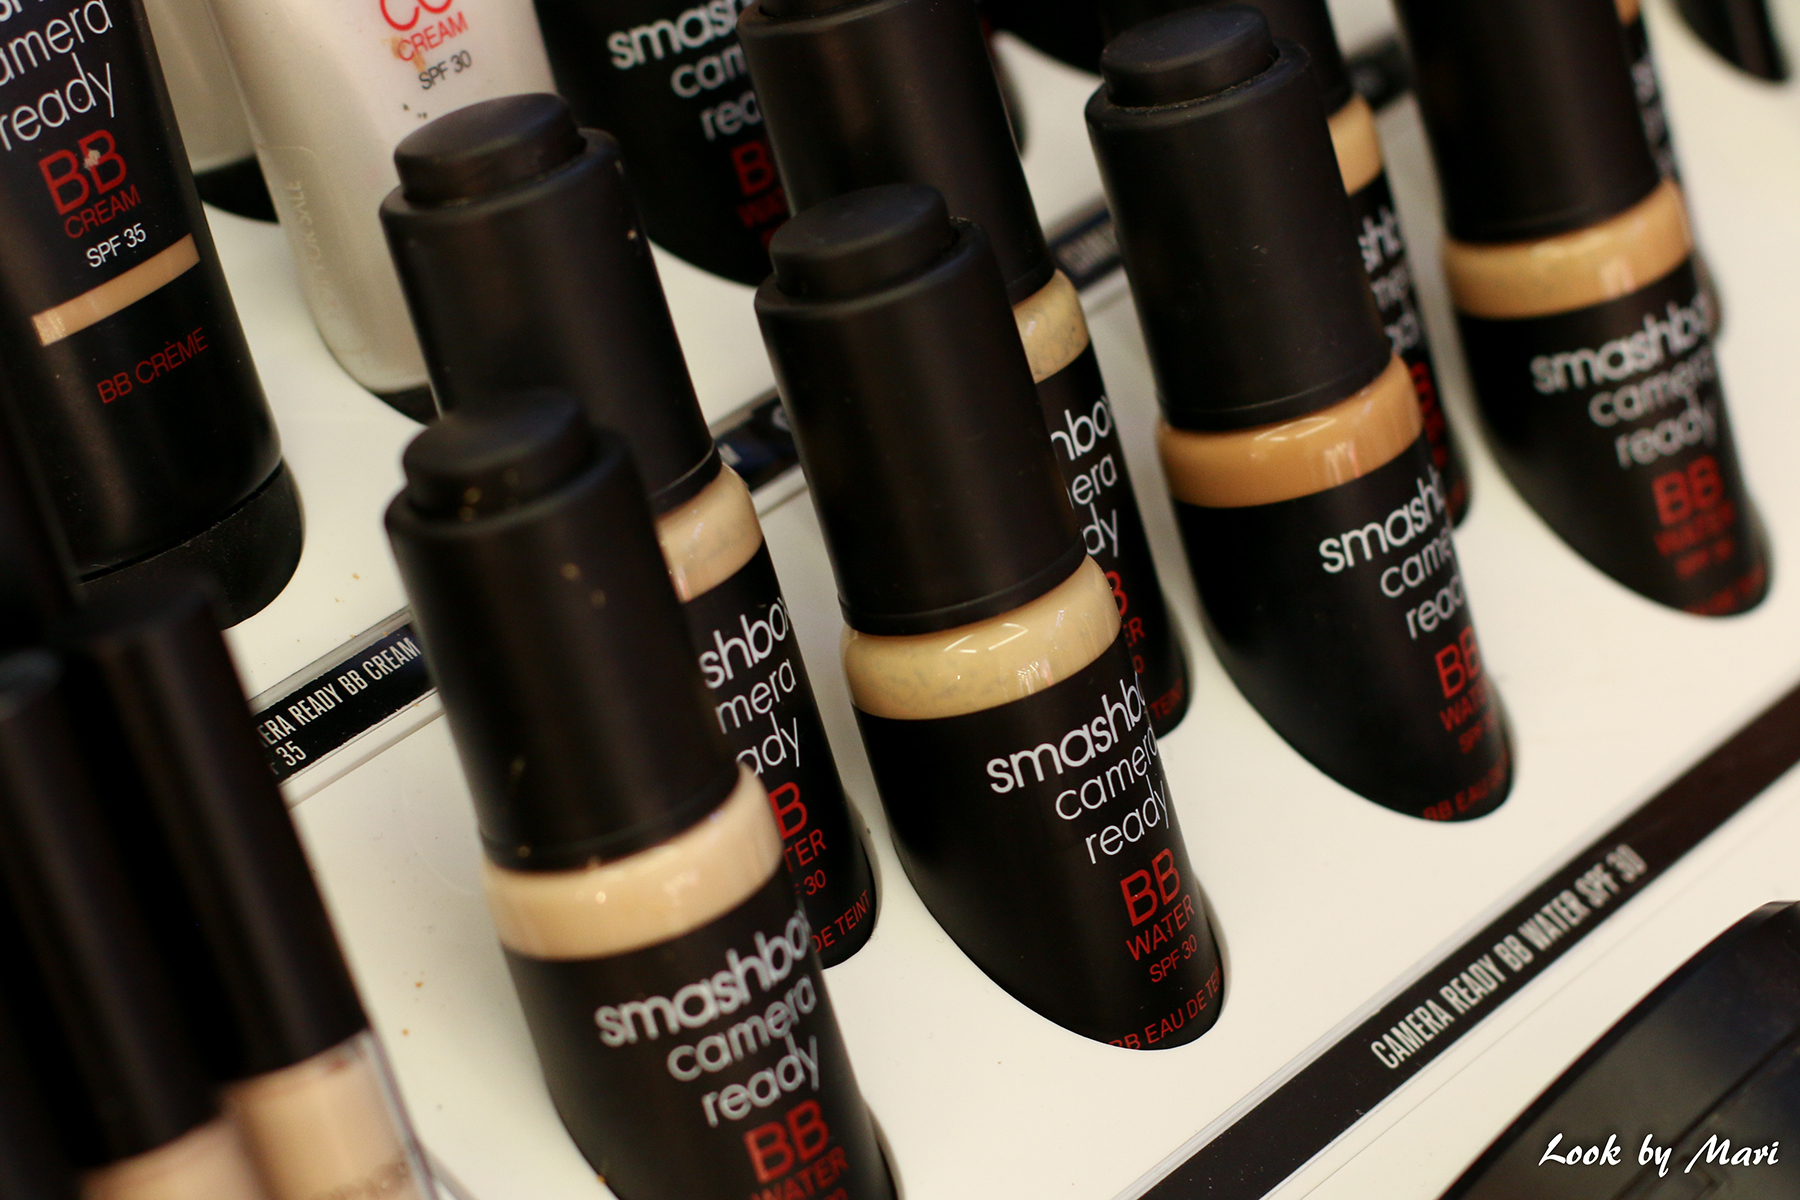 11 smashbox bb cream liquid kick forum spotlight event